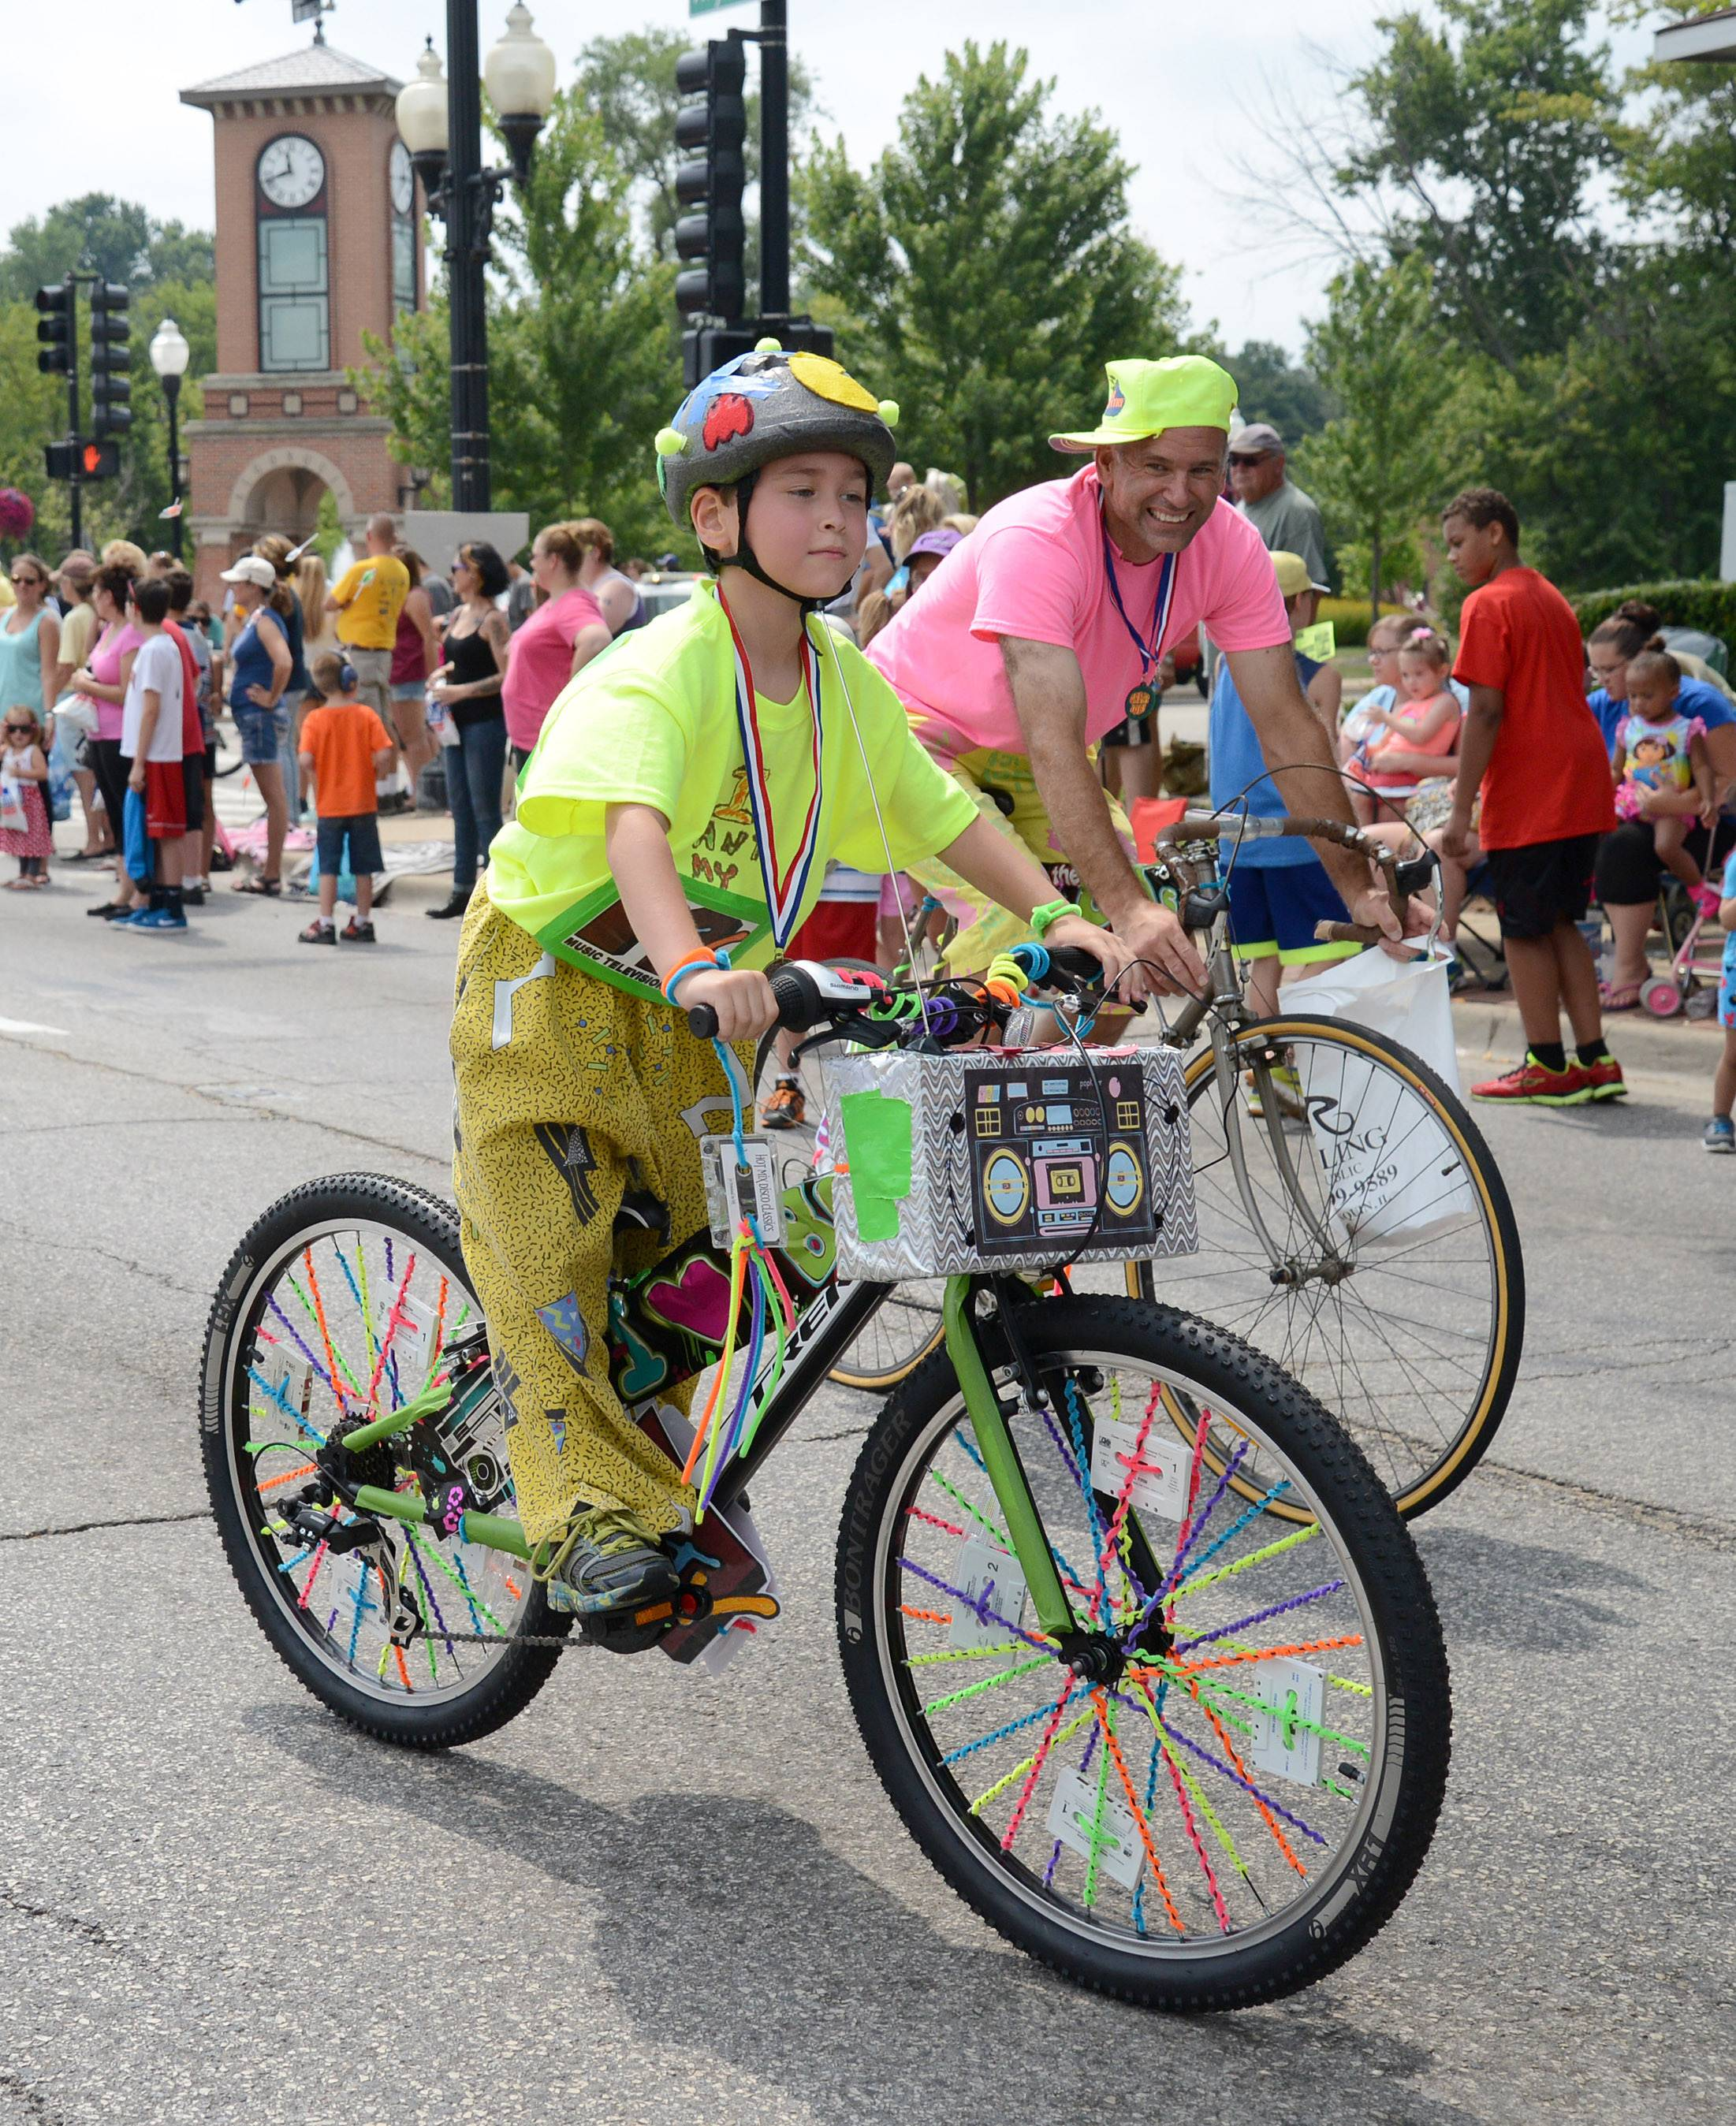 Ethan Fiedler, 7, of Algonquin displays his winning entry in the Founders' Days Bike Decorating Contest during the festival's parade in Algonquin on Saturday. Ethan, who just purchased this new bike, rides with his father, Ray, right.